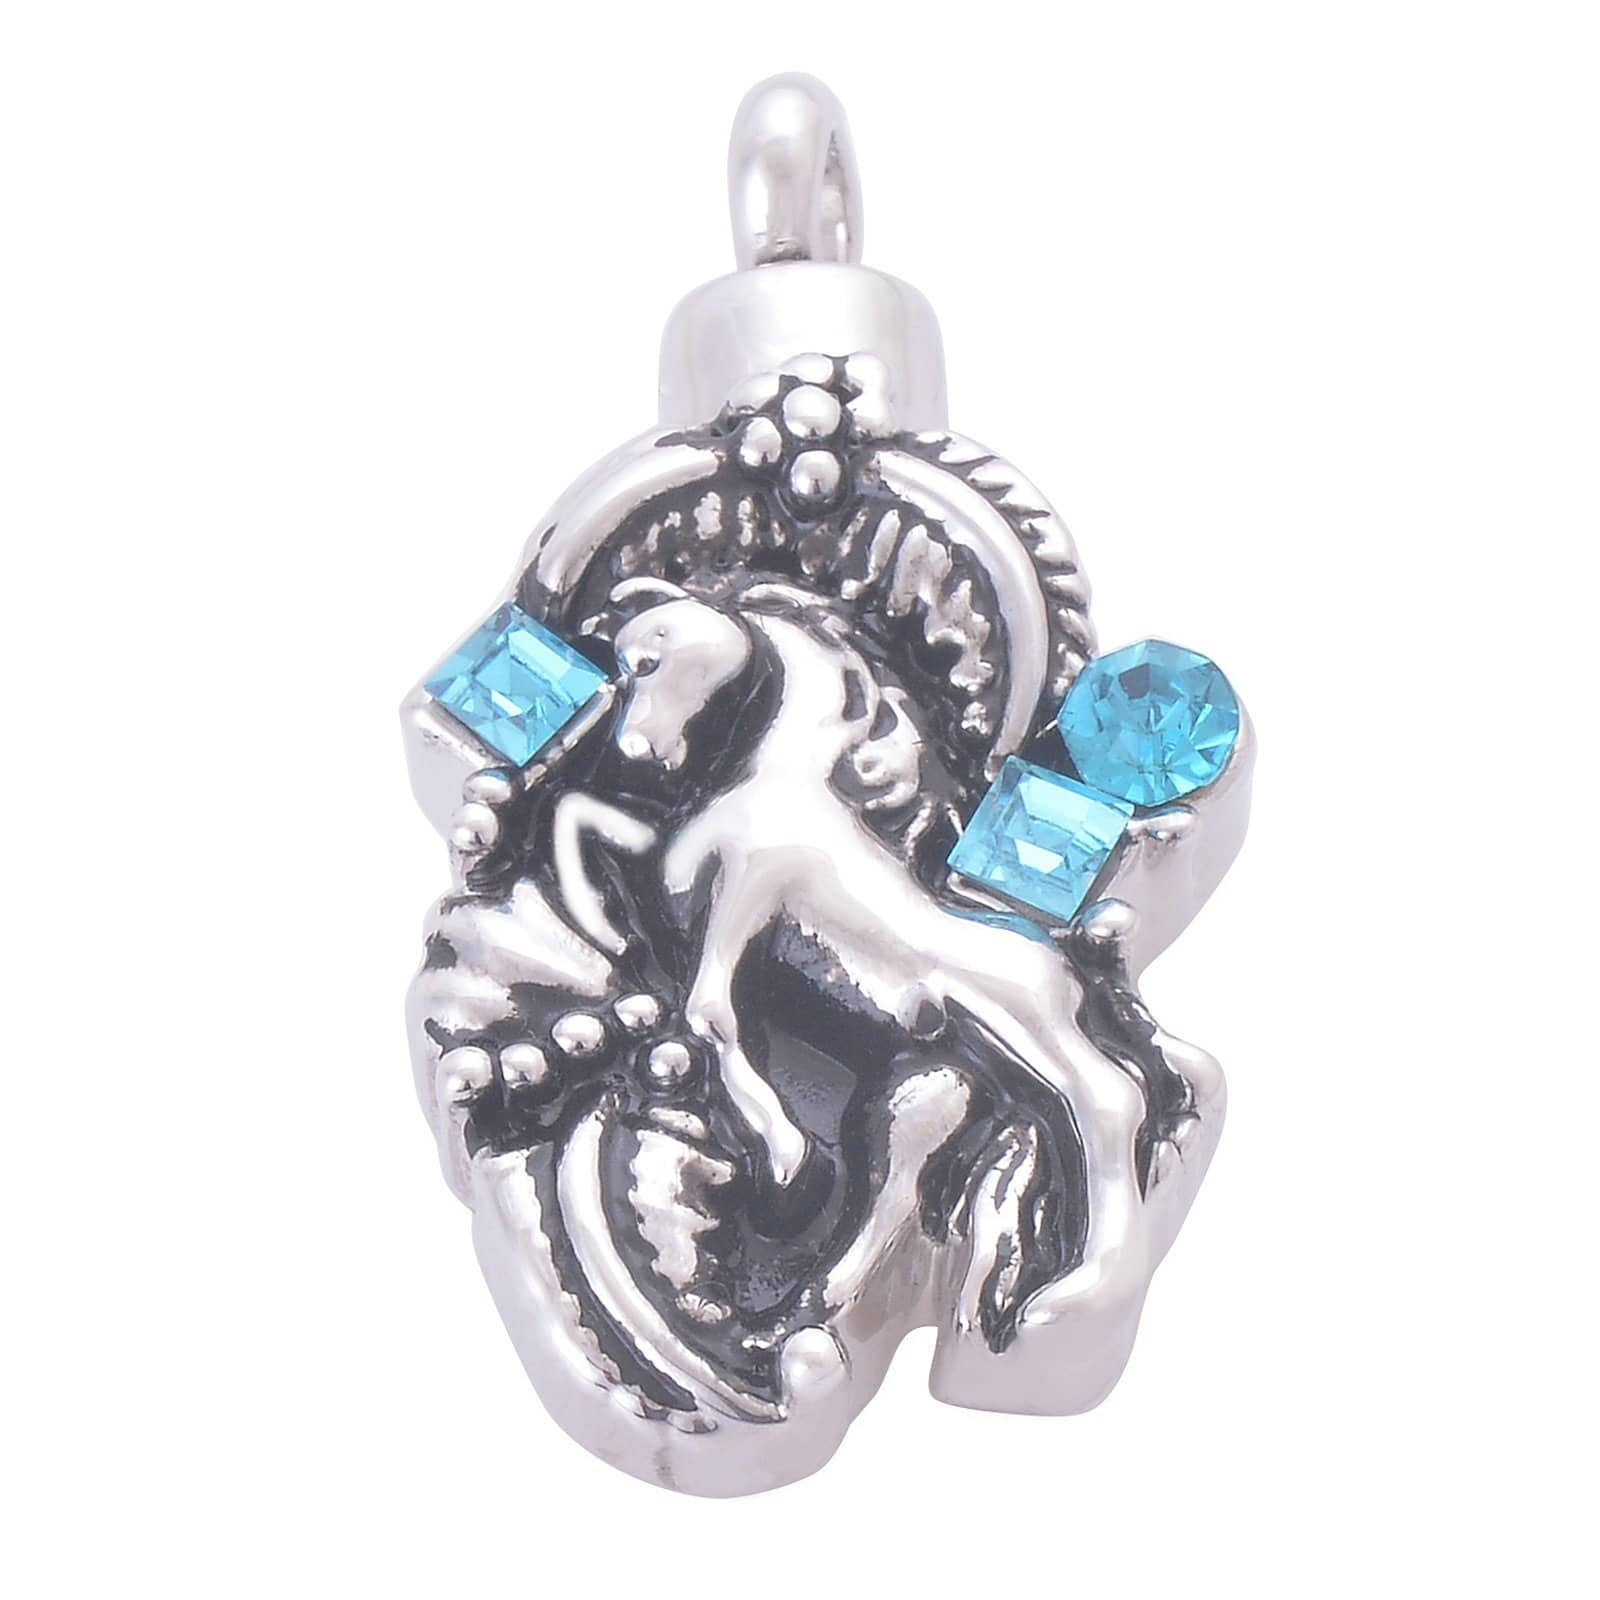 Urn Necklace Cremation Pendant Stainless Steel Cubic Zirconia Horse Silver Engraved 1.9x3.5CM